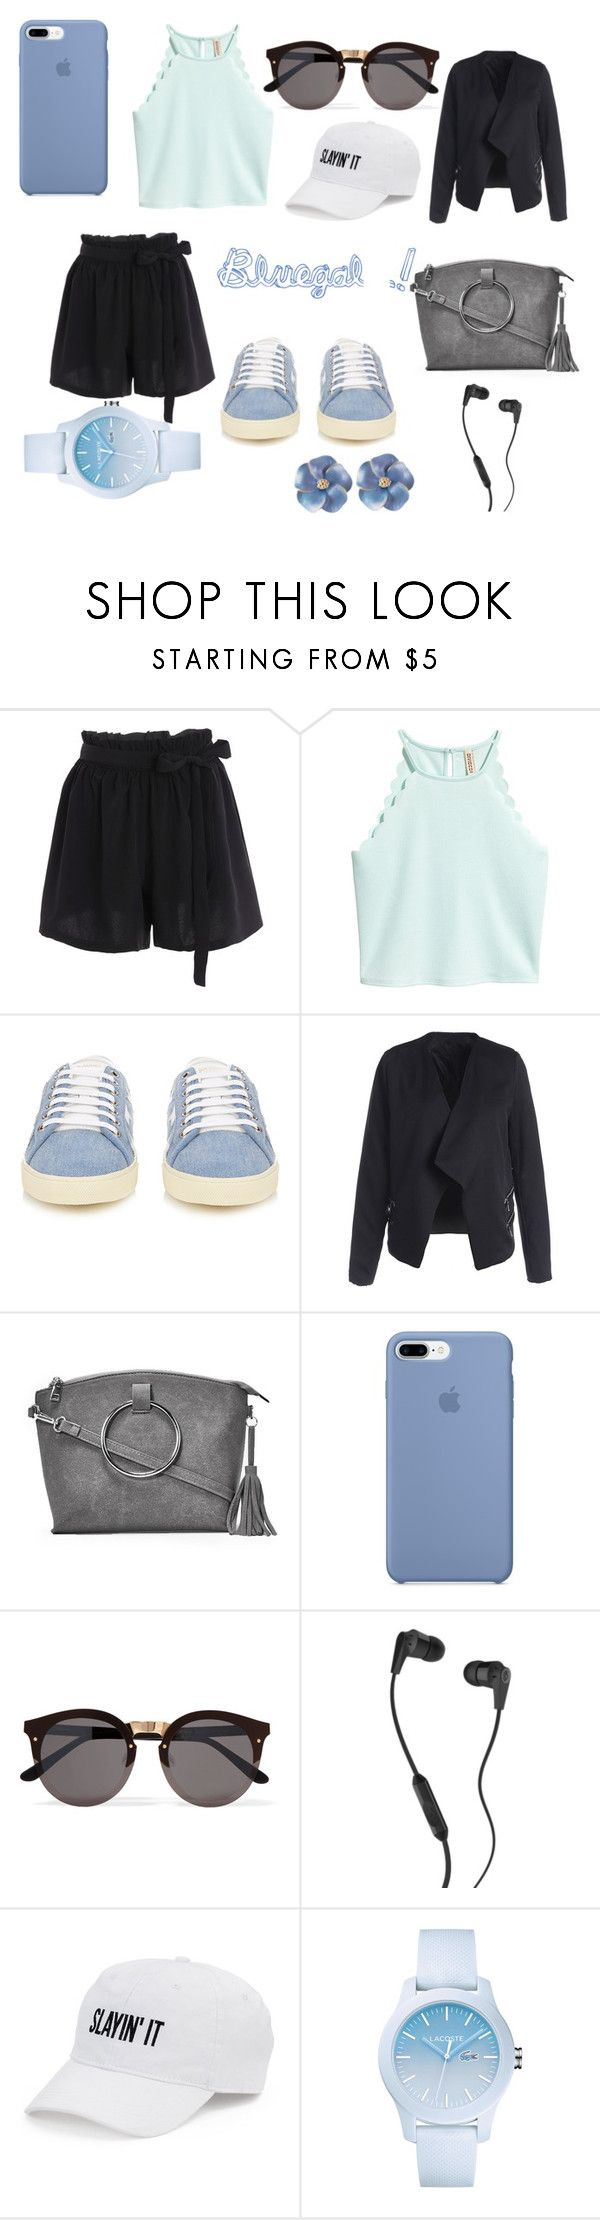 """Bluegal #2"" by elsou on Polyvore featuring mode, Yves Saint Laurent, Nasty Gal, Illesteva, Skullcandy, SO, Lacoste, sweet, summerstyle et pastels"